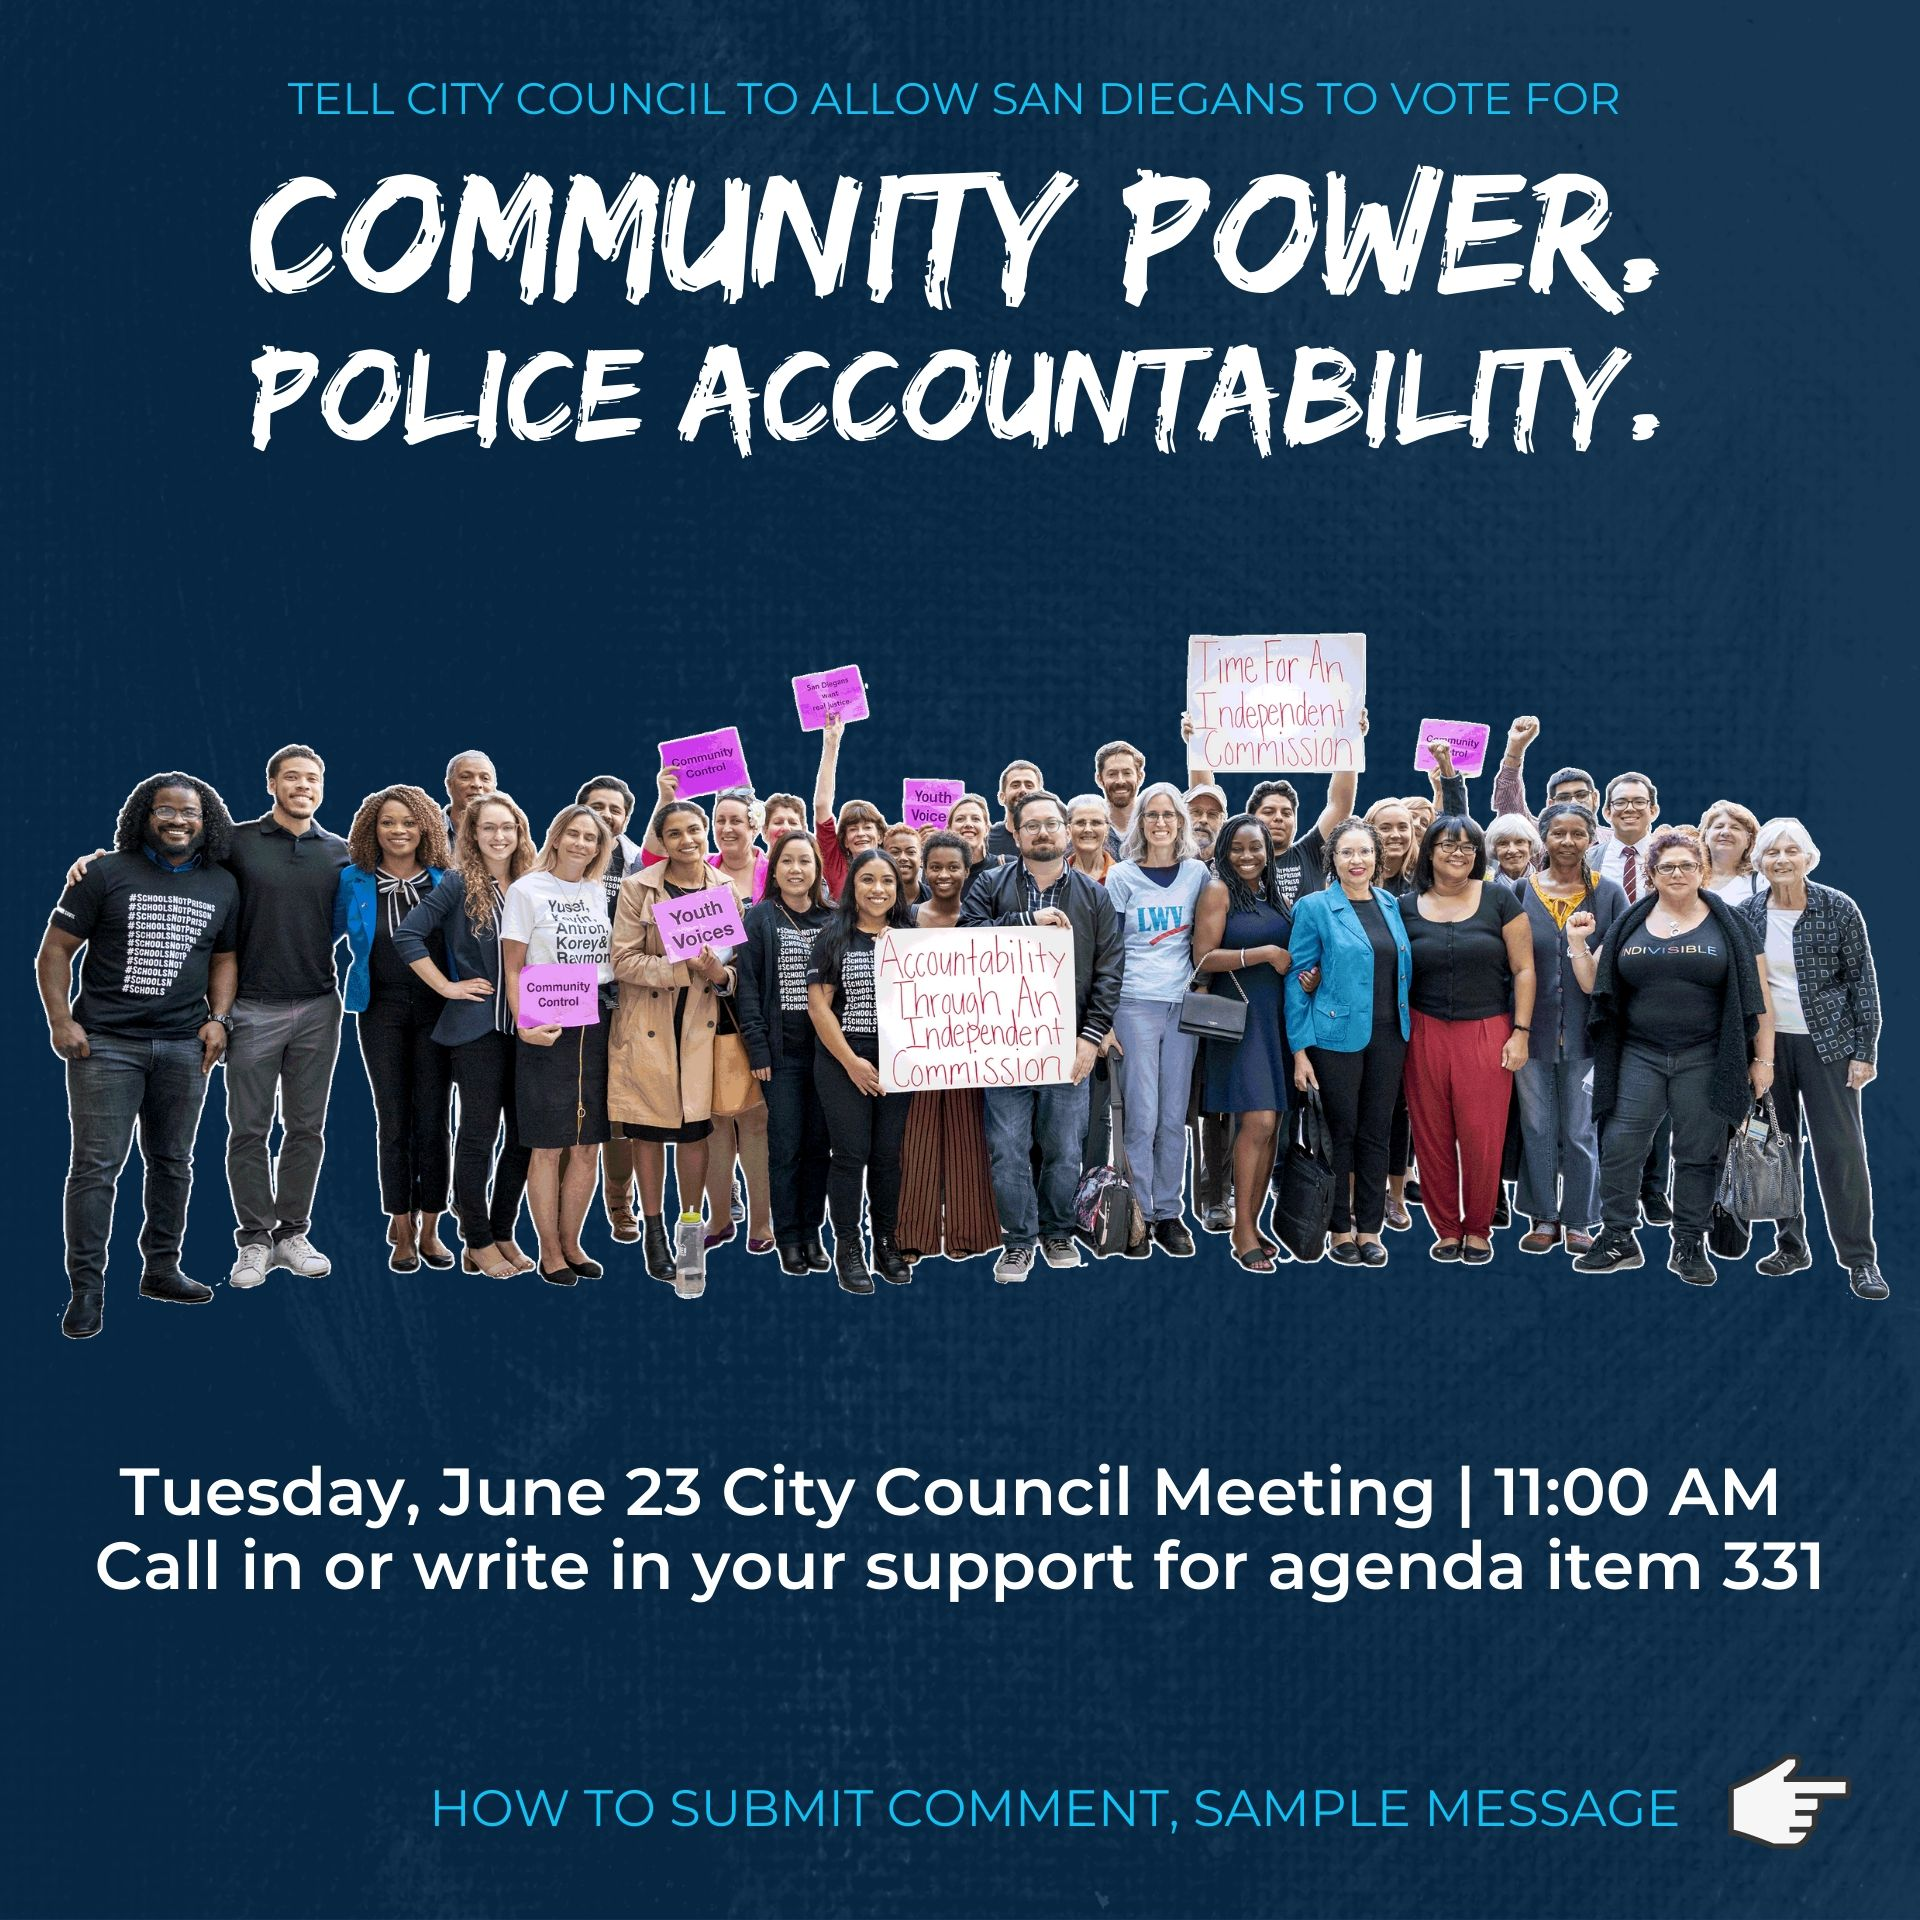 Tuesday, June 23 CRB reform vote